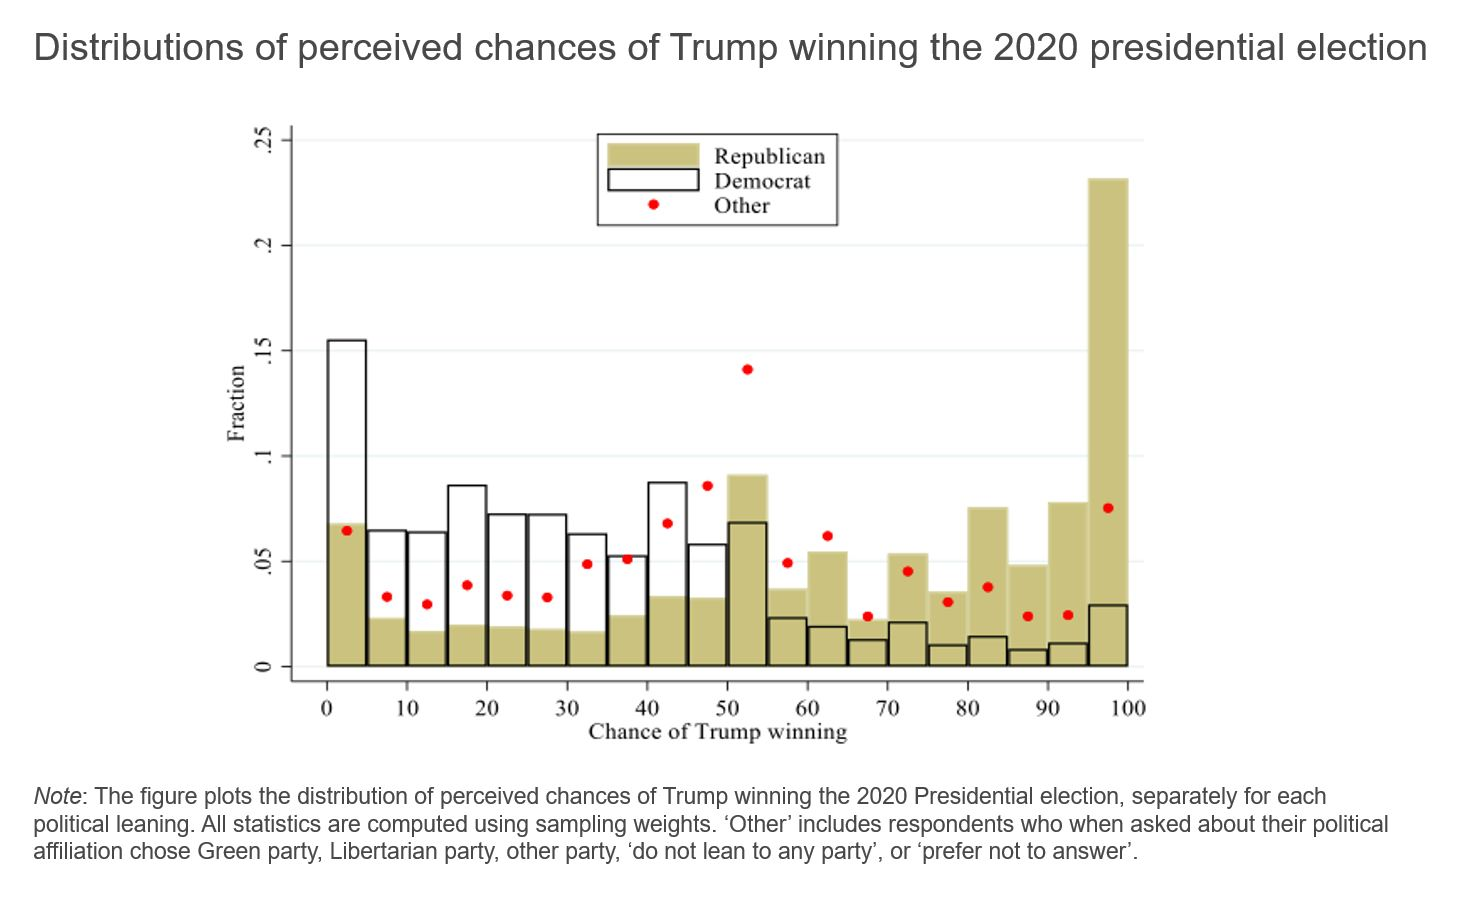 Figure showing distribution of perceived chances of Trump winning